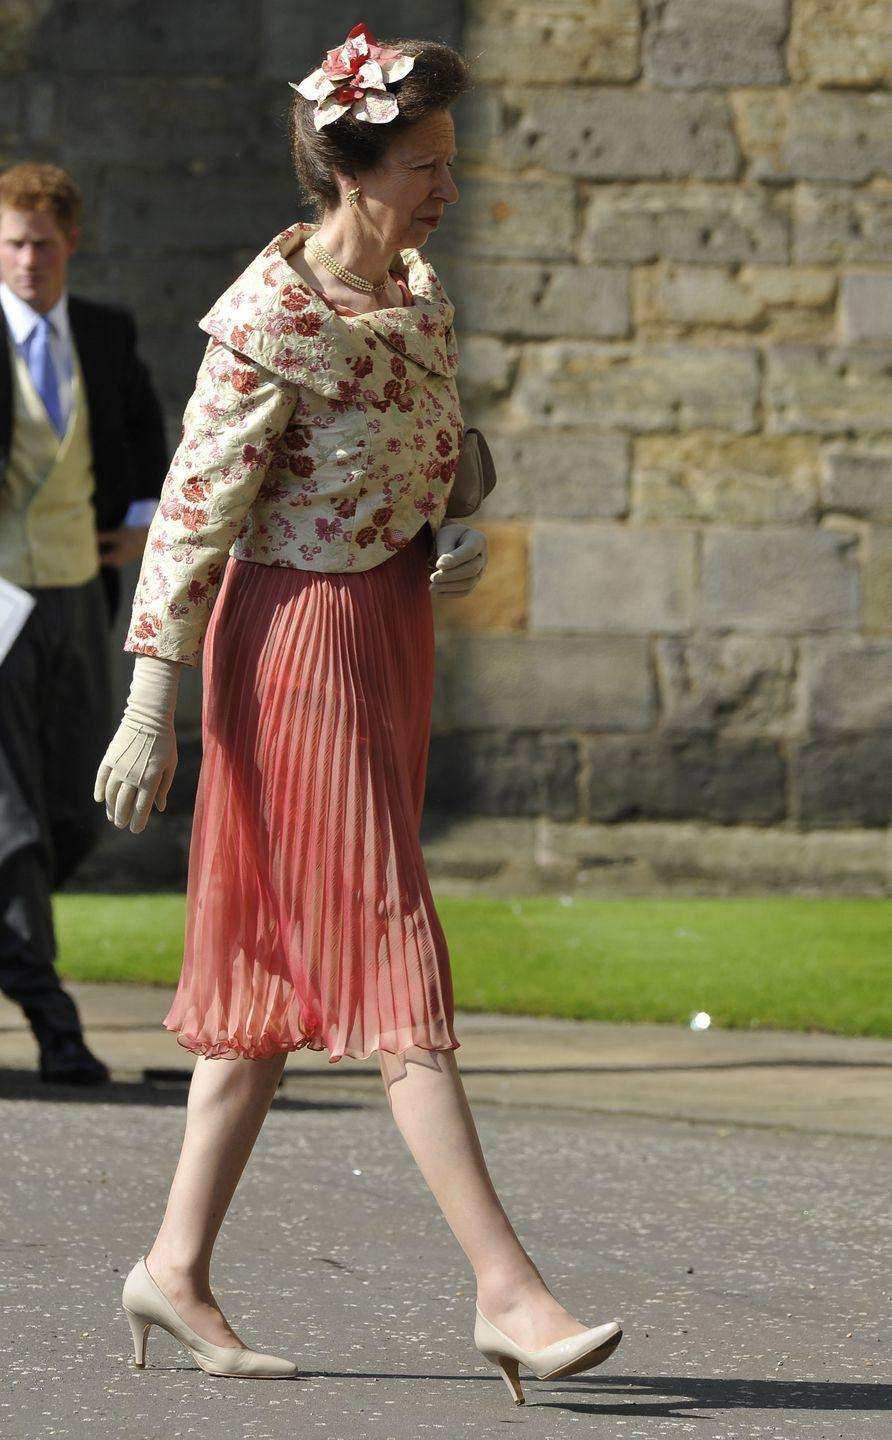 <p>Mother-of-the-bride Princess Anne arrives at the wedding of her daughter Zara with a decorative flower ornament in her hair.</p>